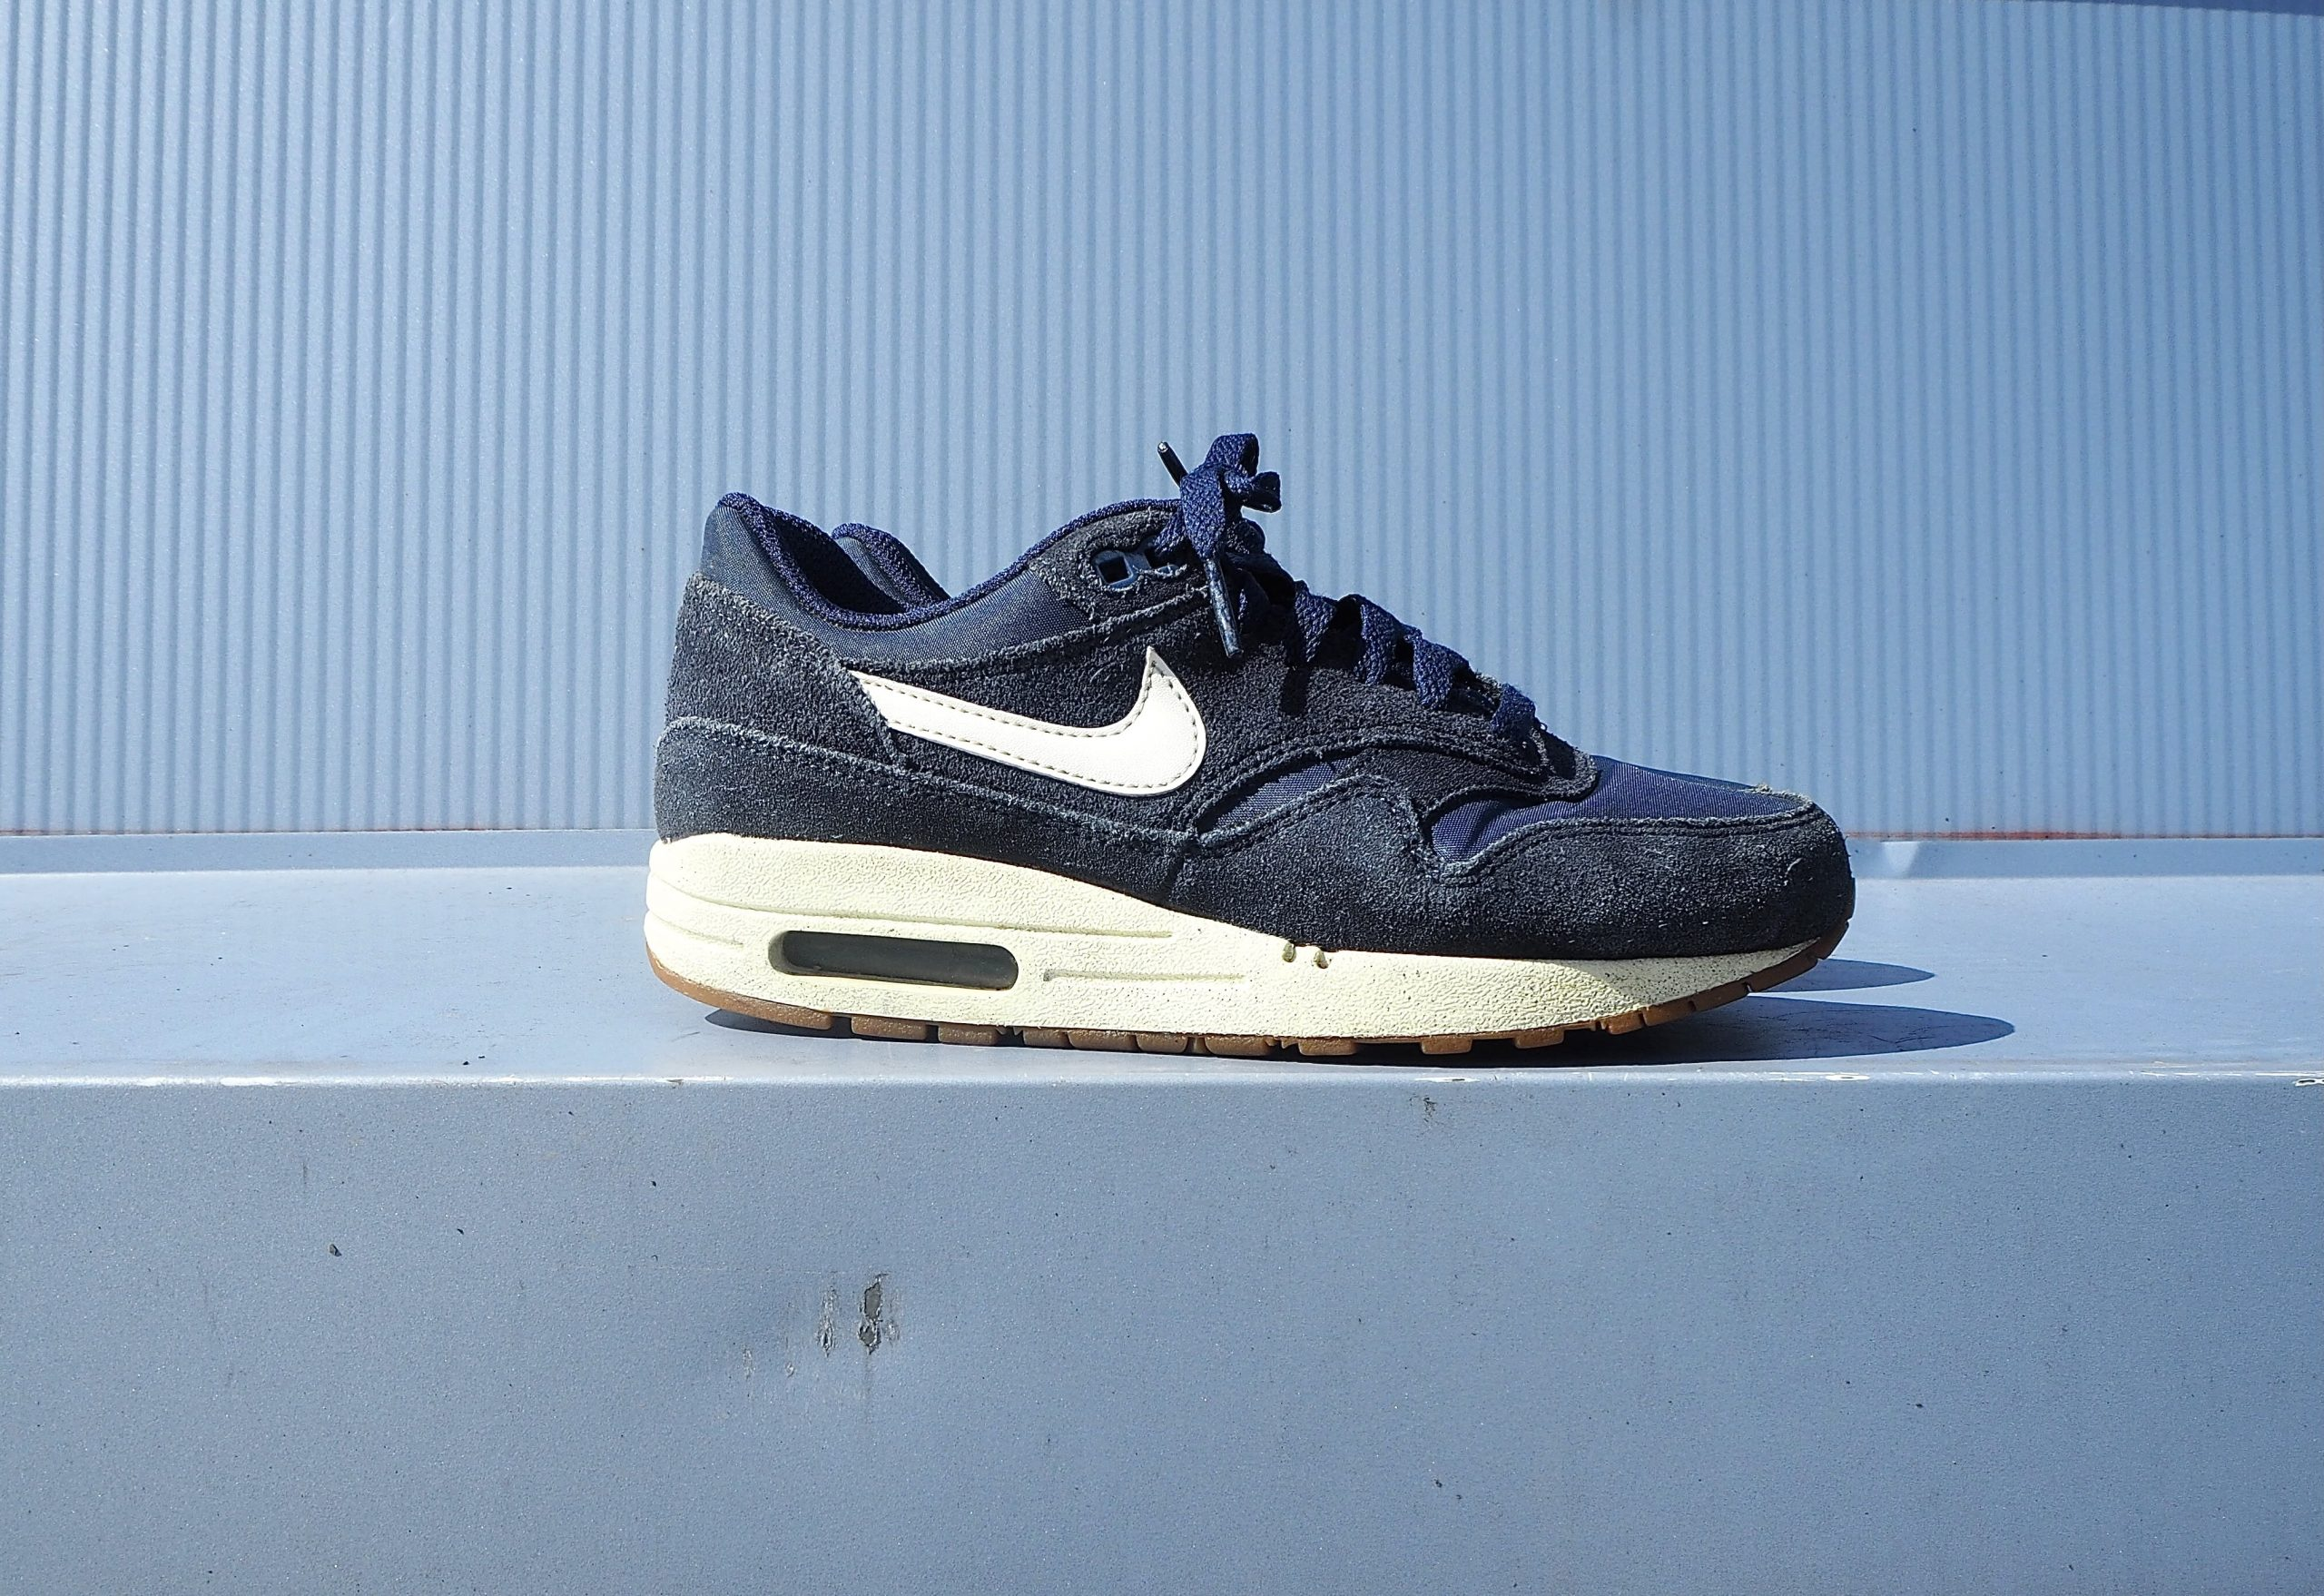 Nike Air Max 1 Blue Suede 'Midnight Navy'